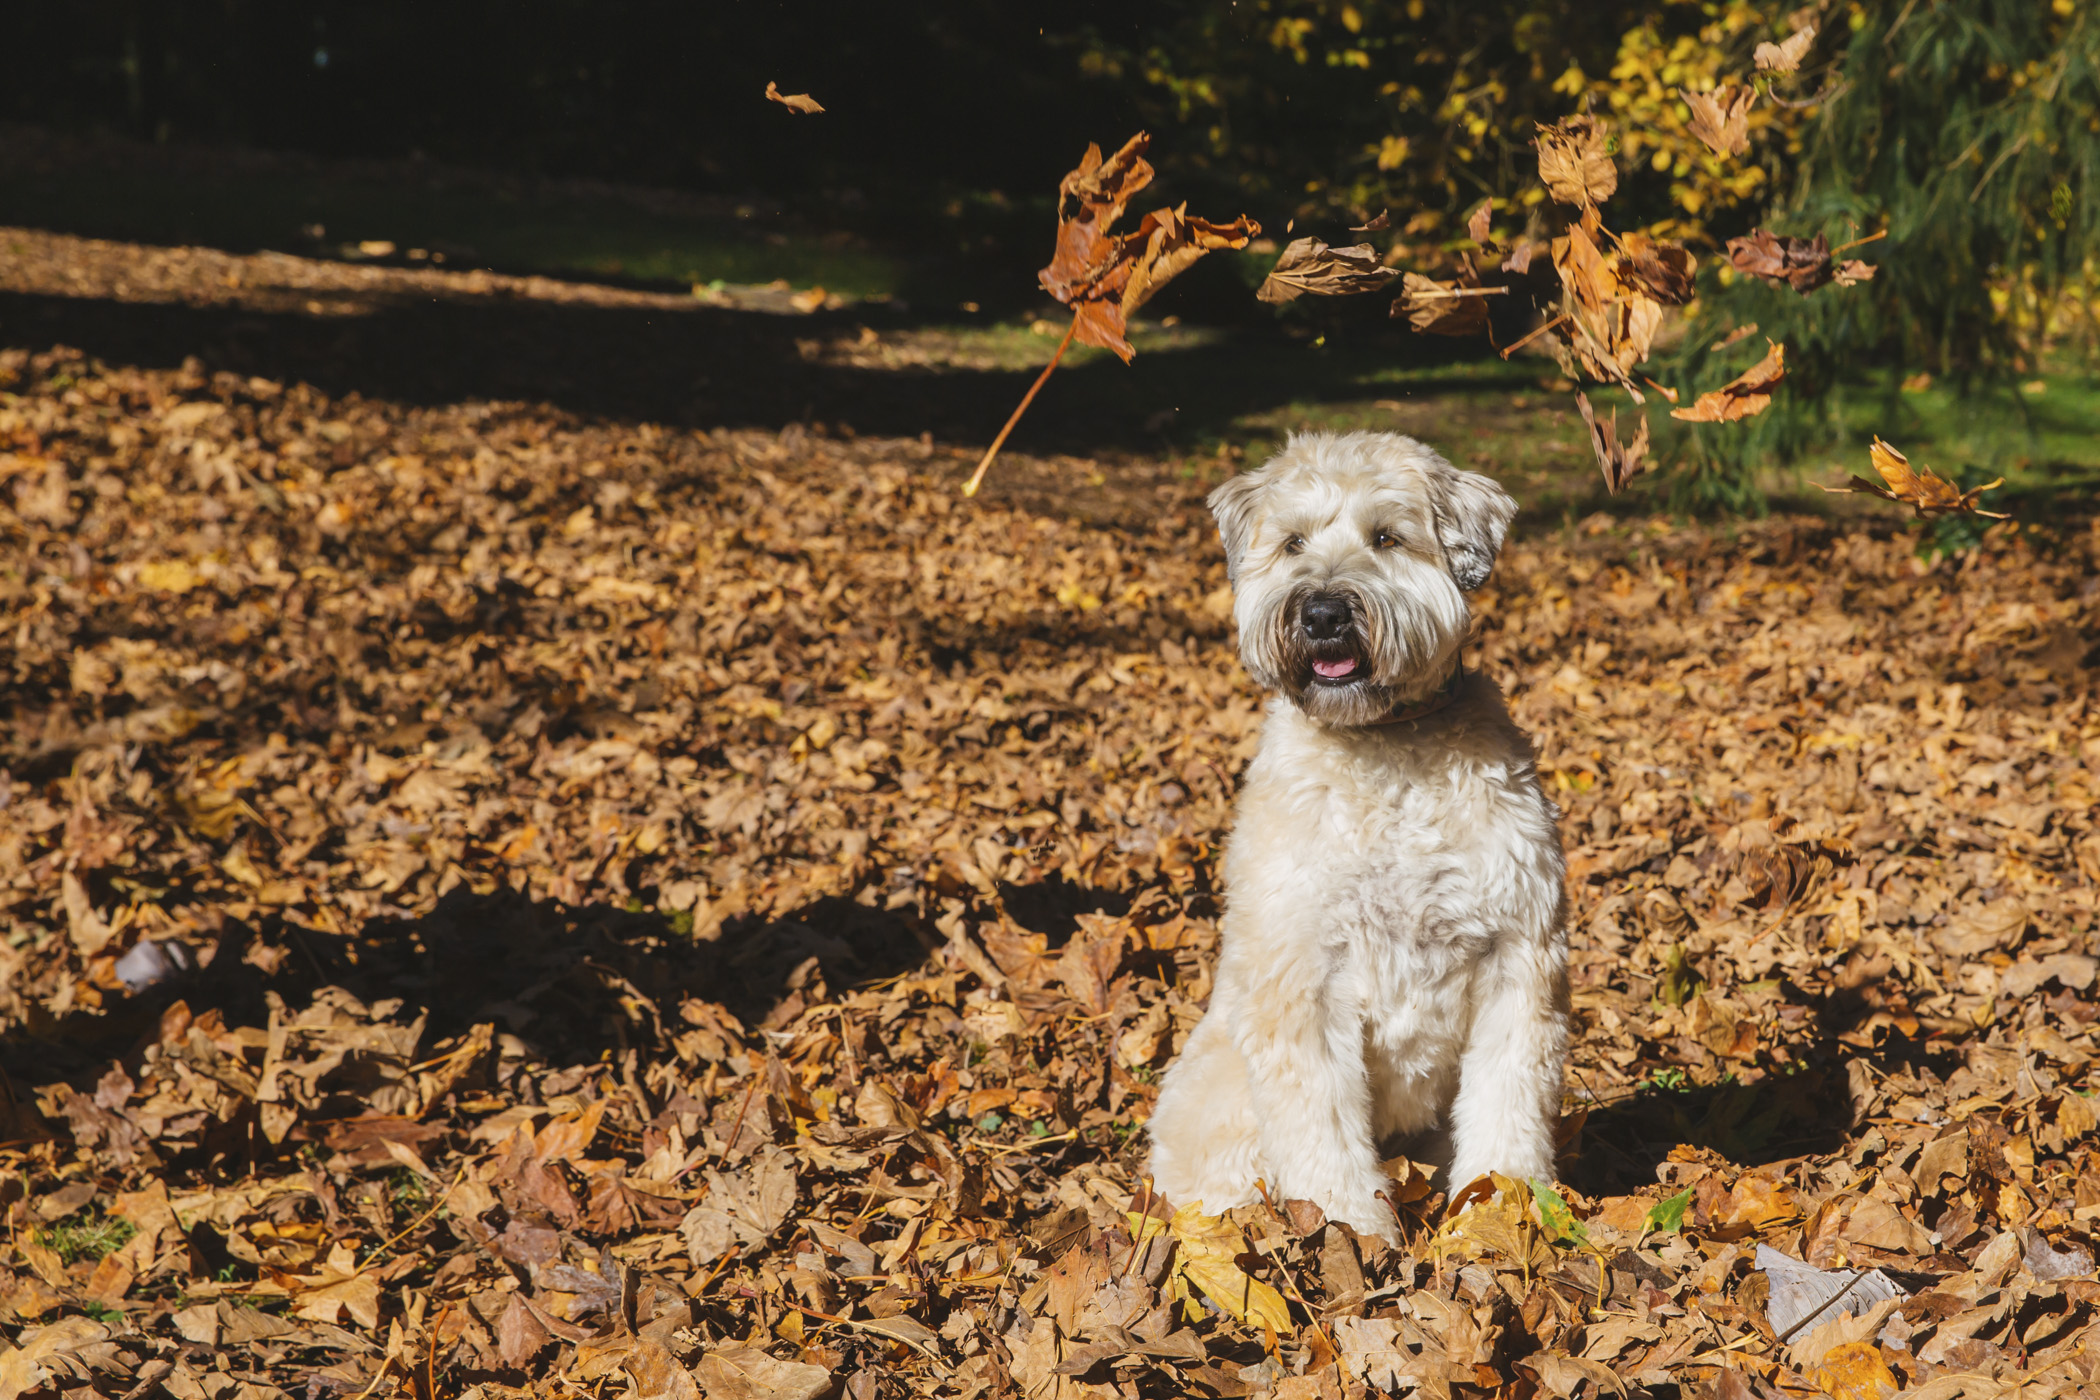 Meet Cleo, the 4-year-old Soft Coated Wheaten Terrier! She was born in Virginia, but is living a very happy life in the PNW where she can bury her face in the snow and go paddle-boarding in the Puget Sound. Cleo's other favorite pastimes include using the couch as a napkin after every meal, ccompanying her mom on snowshoe adventures, going on trail rides with her big (horse) brother, Benji, stalking squirrels and playing chase at Marymoor. She loves snow, the zoomies, hiking and her grandparents. She dislikes fireworks and cats! You can follow Cleo's journey through like on Instagram @cleowheatie.{ }{ }The Seattle RUFFined Spotlight is a weekly profile of local pets living and loving life in the PNW. If you or someone you know has a pet you'd like featured, email us at hello@seattlerefined.com or tag #SeattleRUFFined and your furbaby could be the next spotlighted! (Image: Sunita Martini / Seattle Refined)